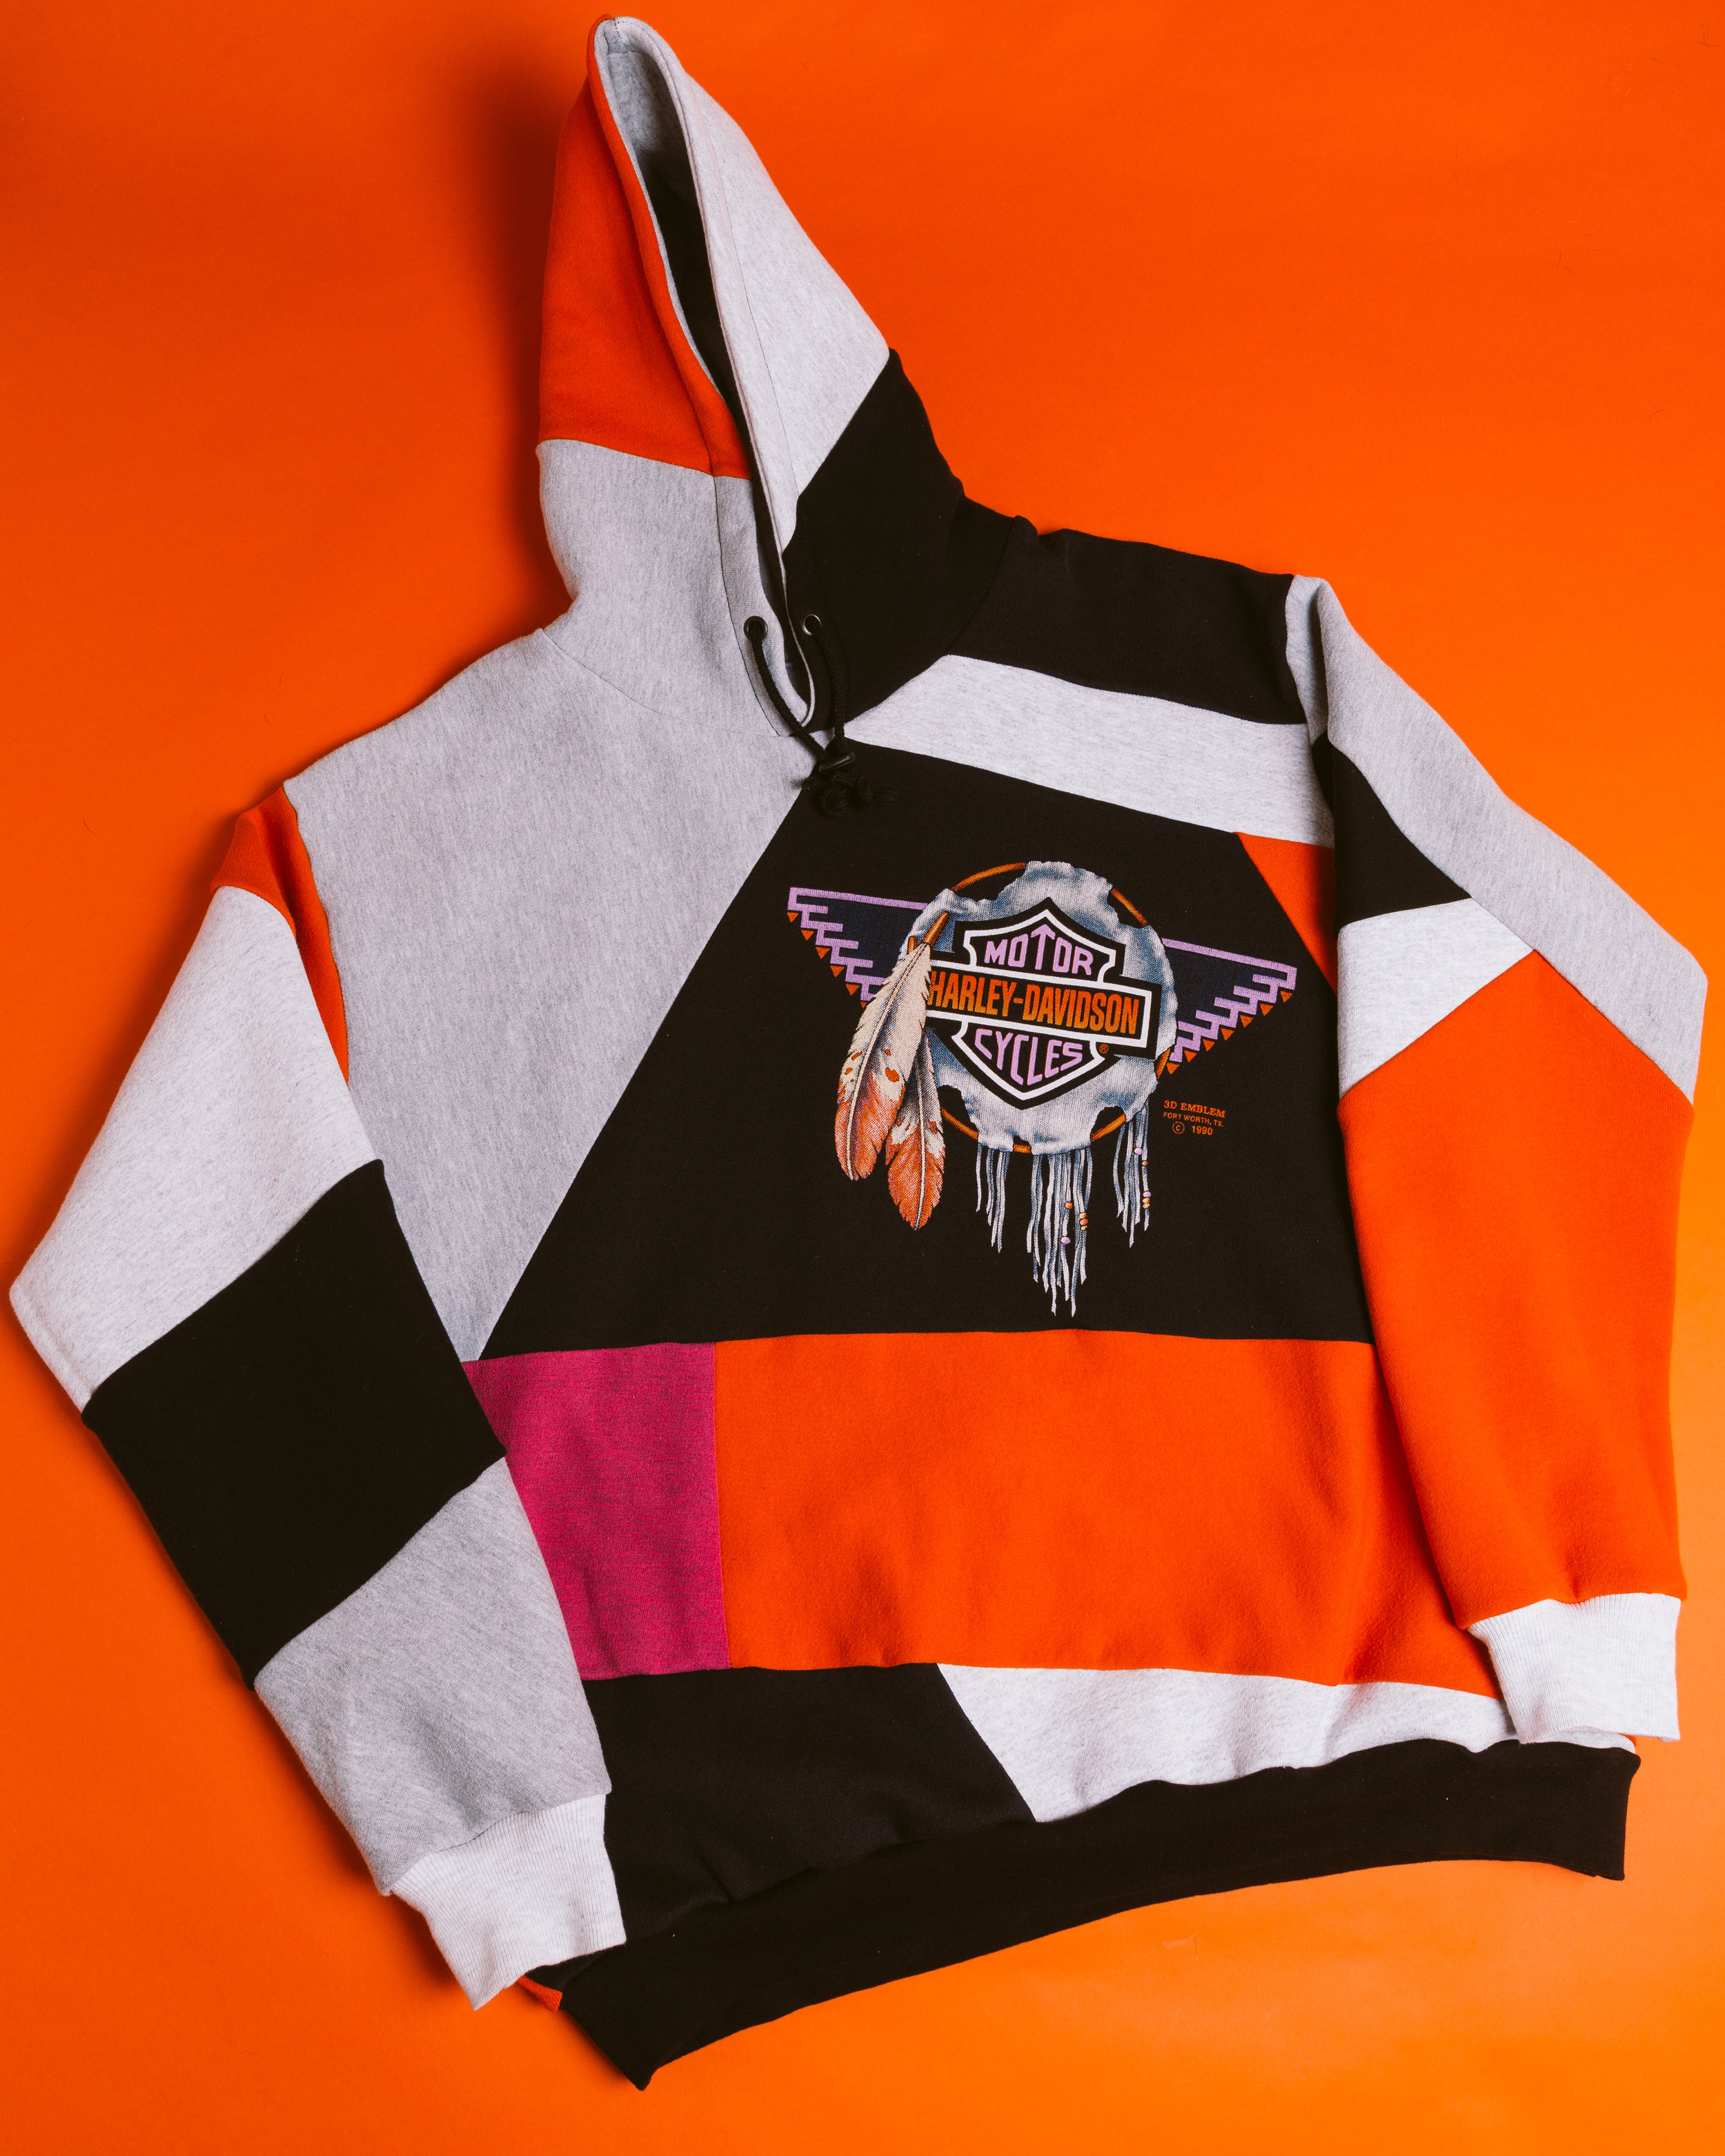 Harley Sweatshirt - Reincarnated from a '90 Harley-Davidson crewneck along with several other vintage sweatshirts.